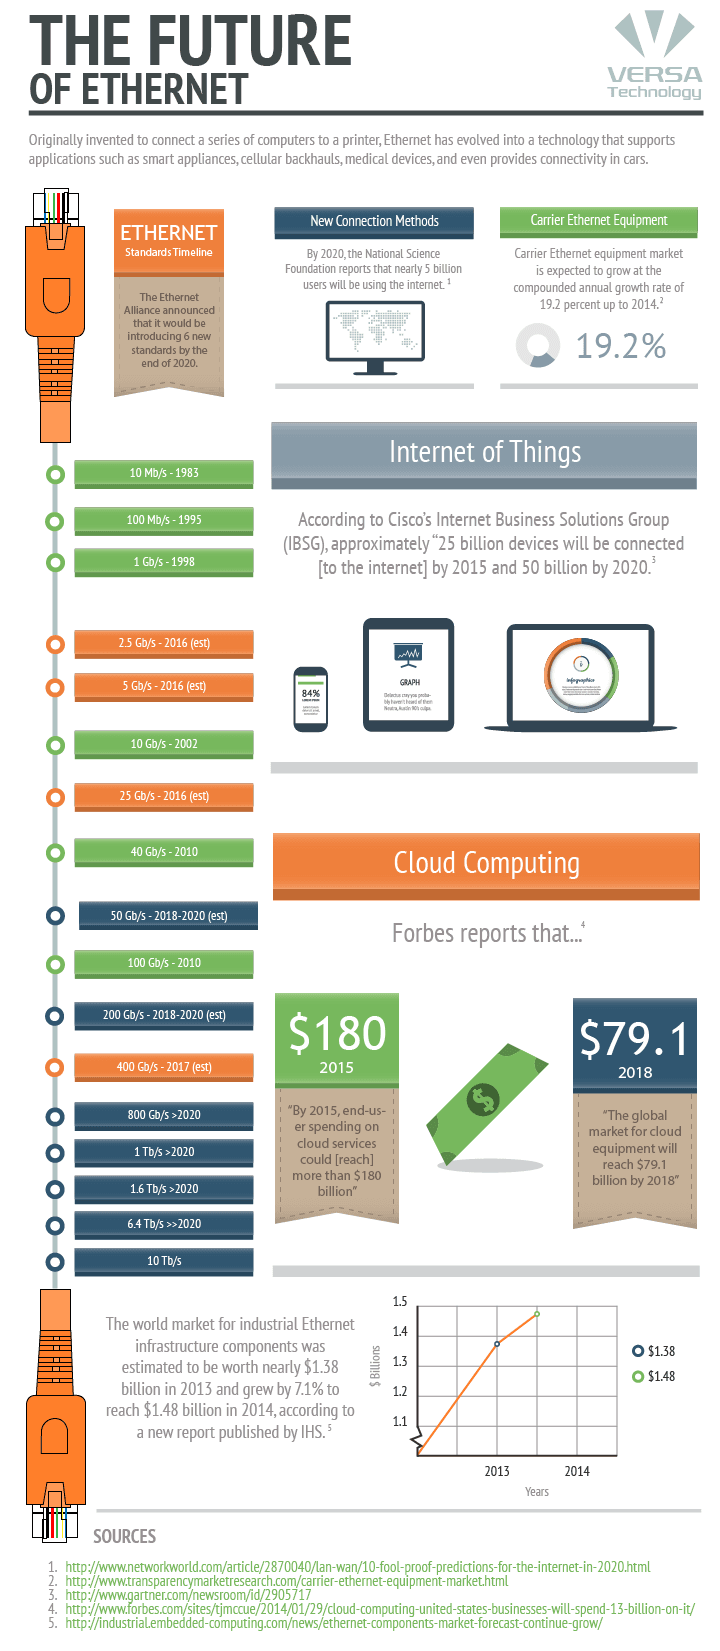 The Future of Ethernet Infographic